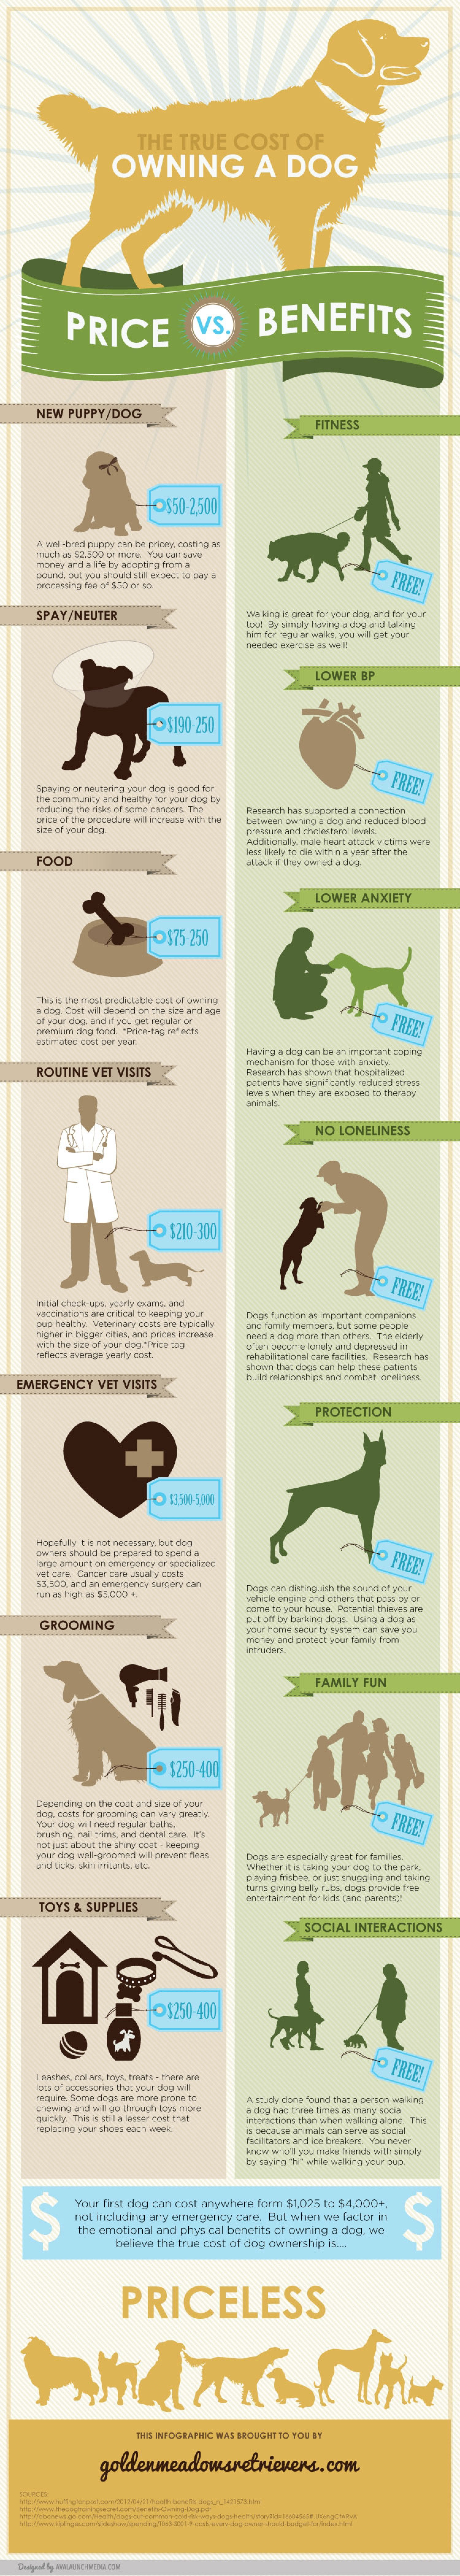 The True Cost of Owning a Dog Infographic Dog